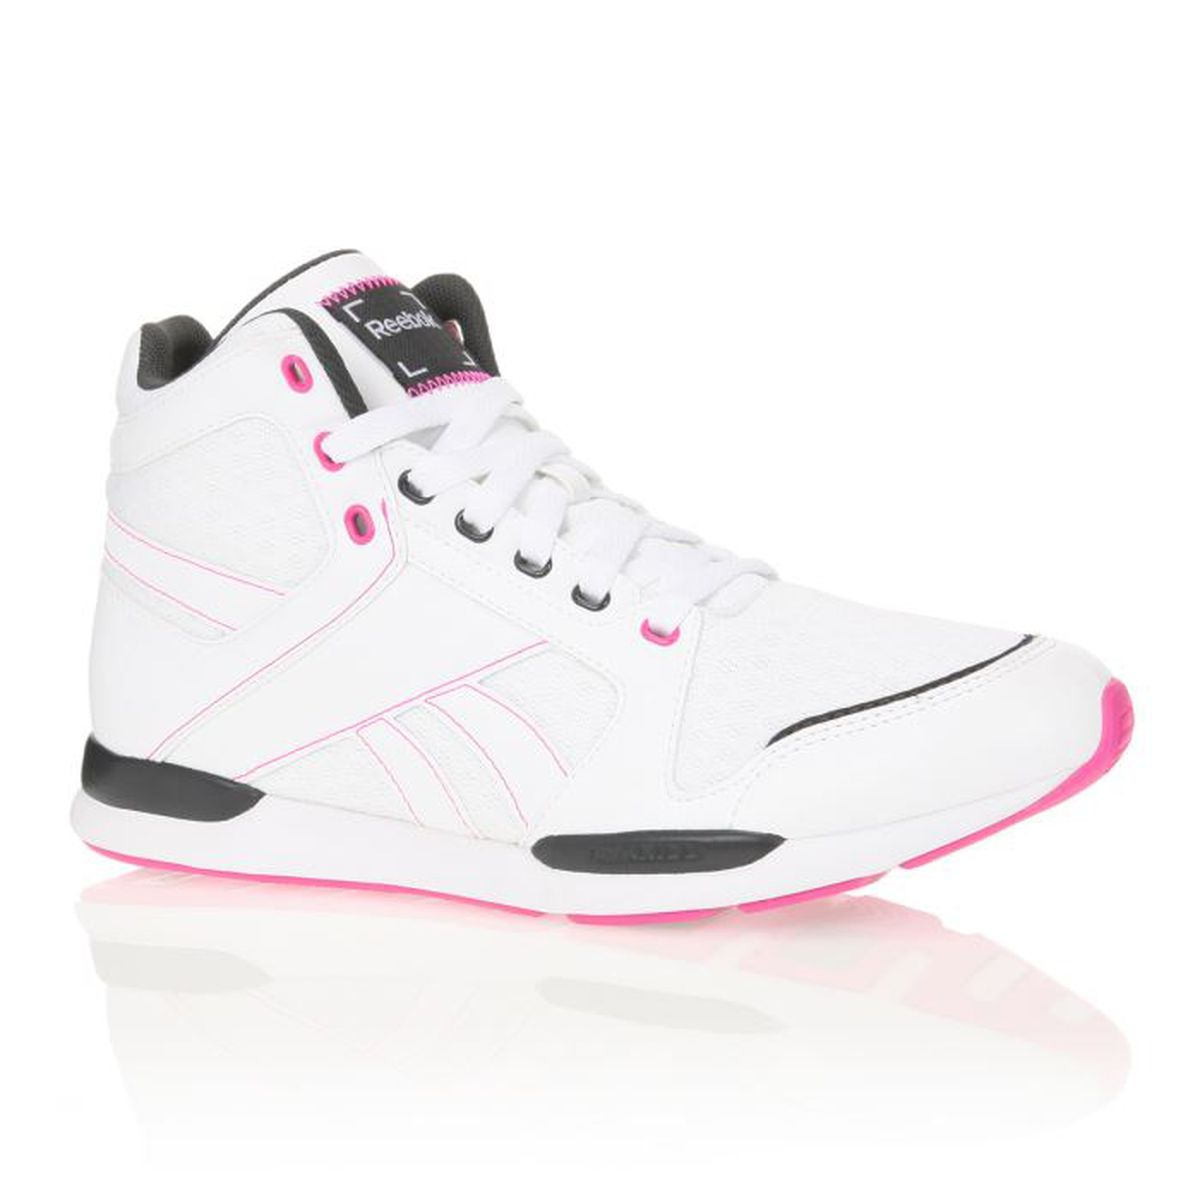 reebok chaussures fitness femme blanc achat vente. Black Bedroom Furniture Sets. Home Design Ideas